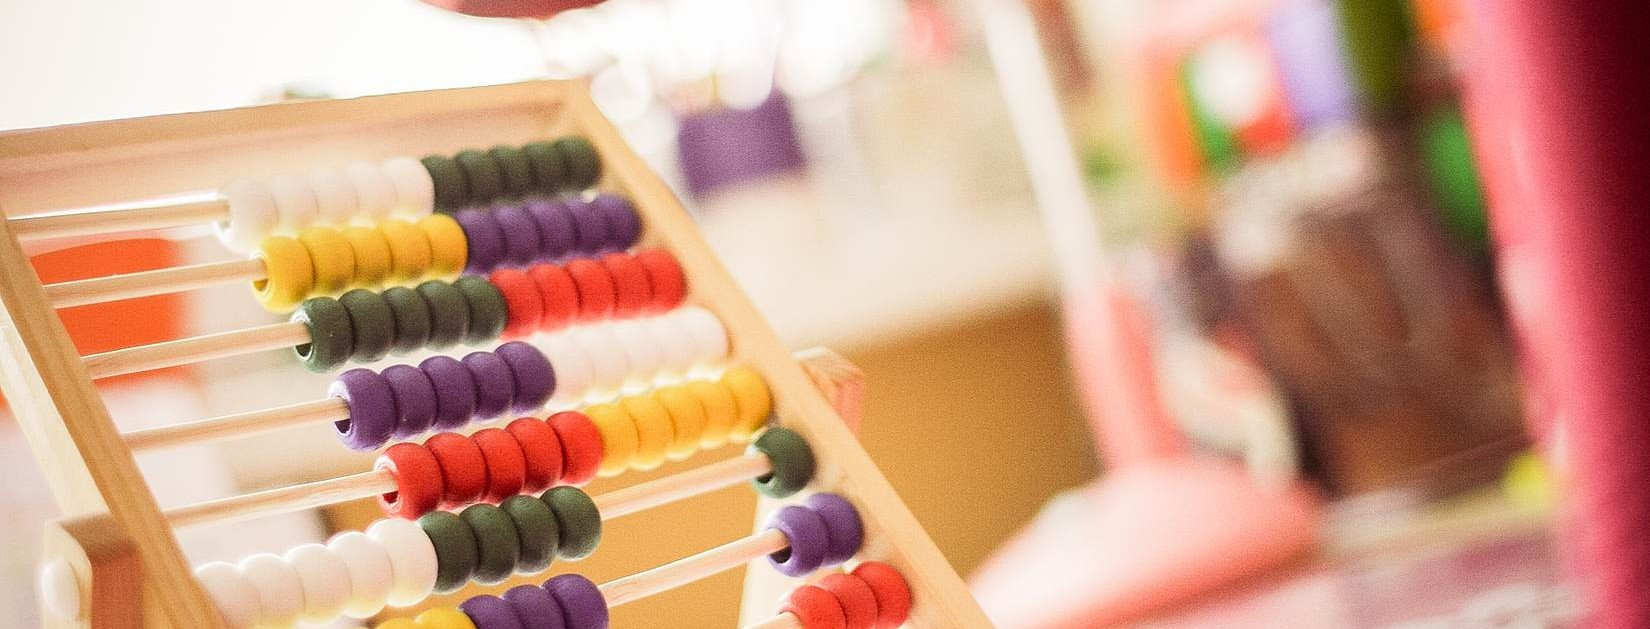 abacus-in-classroom